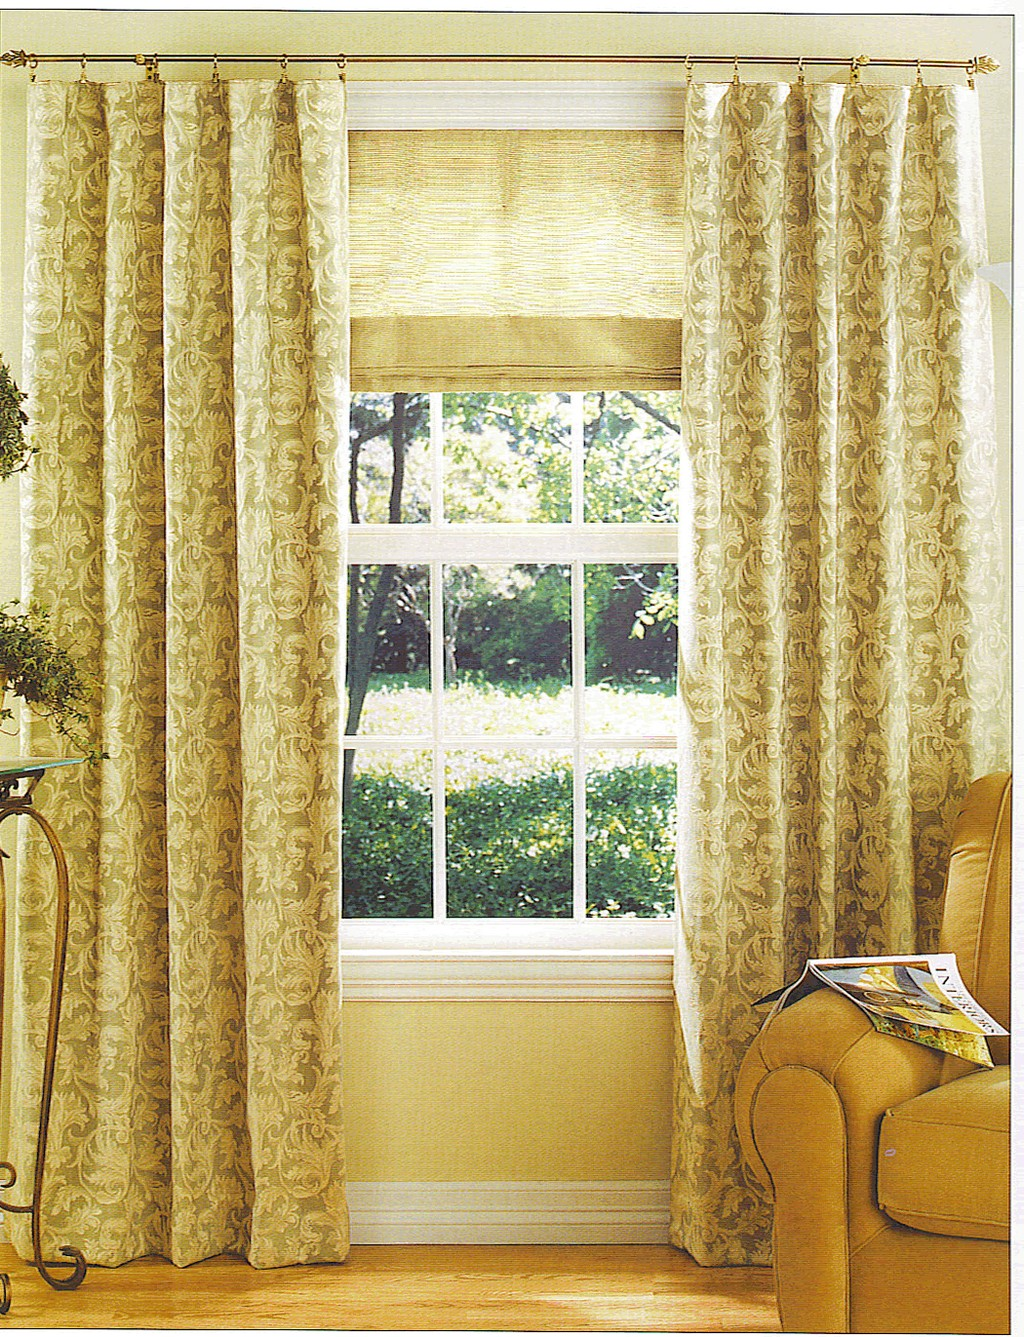 plaid kitchen curtains, waverly kitchen curtains, shower curtains, bay window curtain rods